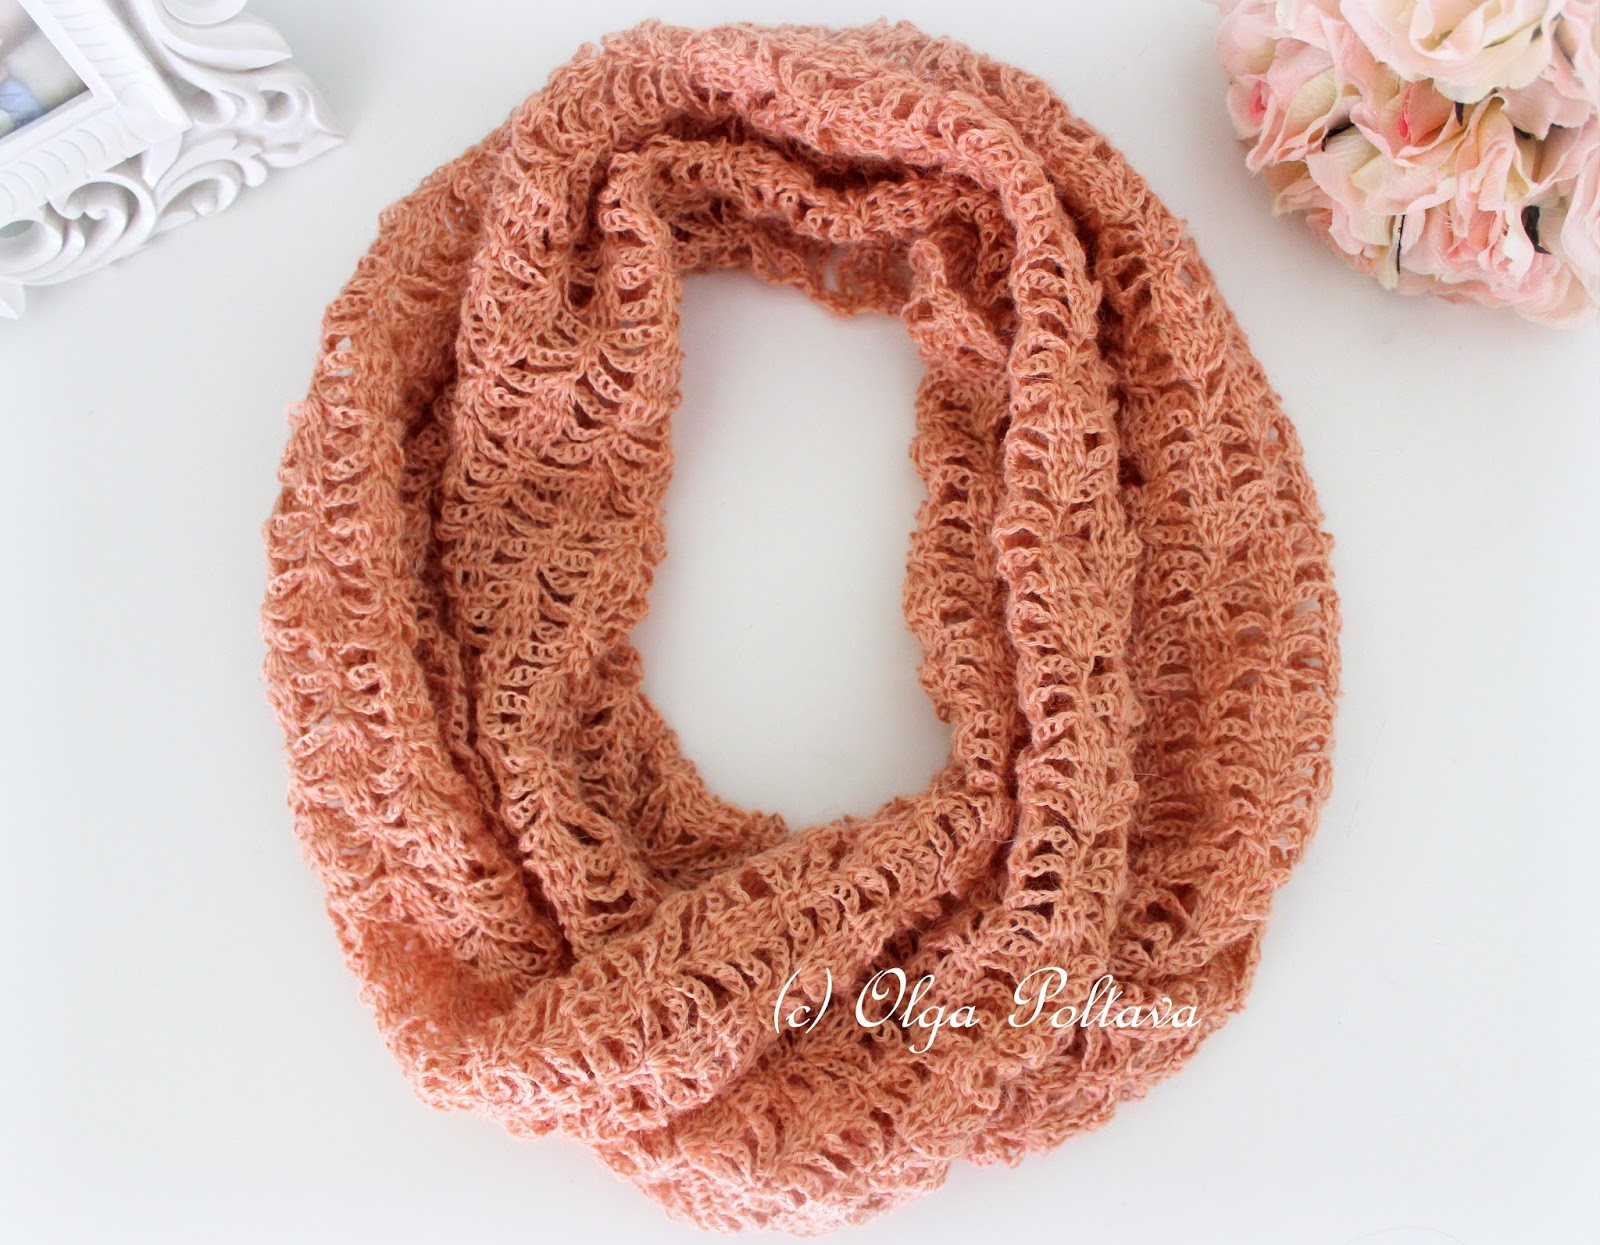 Crochet Thread Patterns Elegant Lacy Crochet Peach Lace Infinity Crochet Scarf Of Superb 47 Pics Crochet Thread Patterns